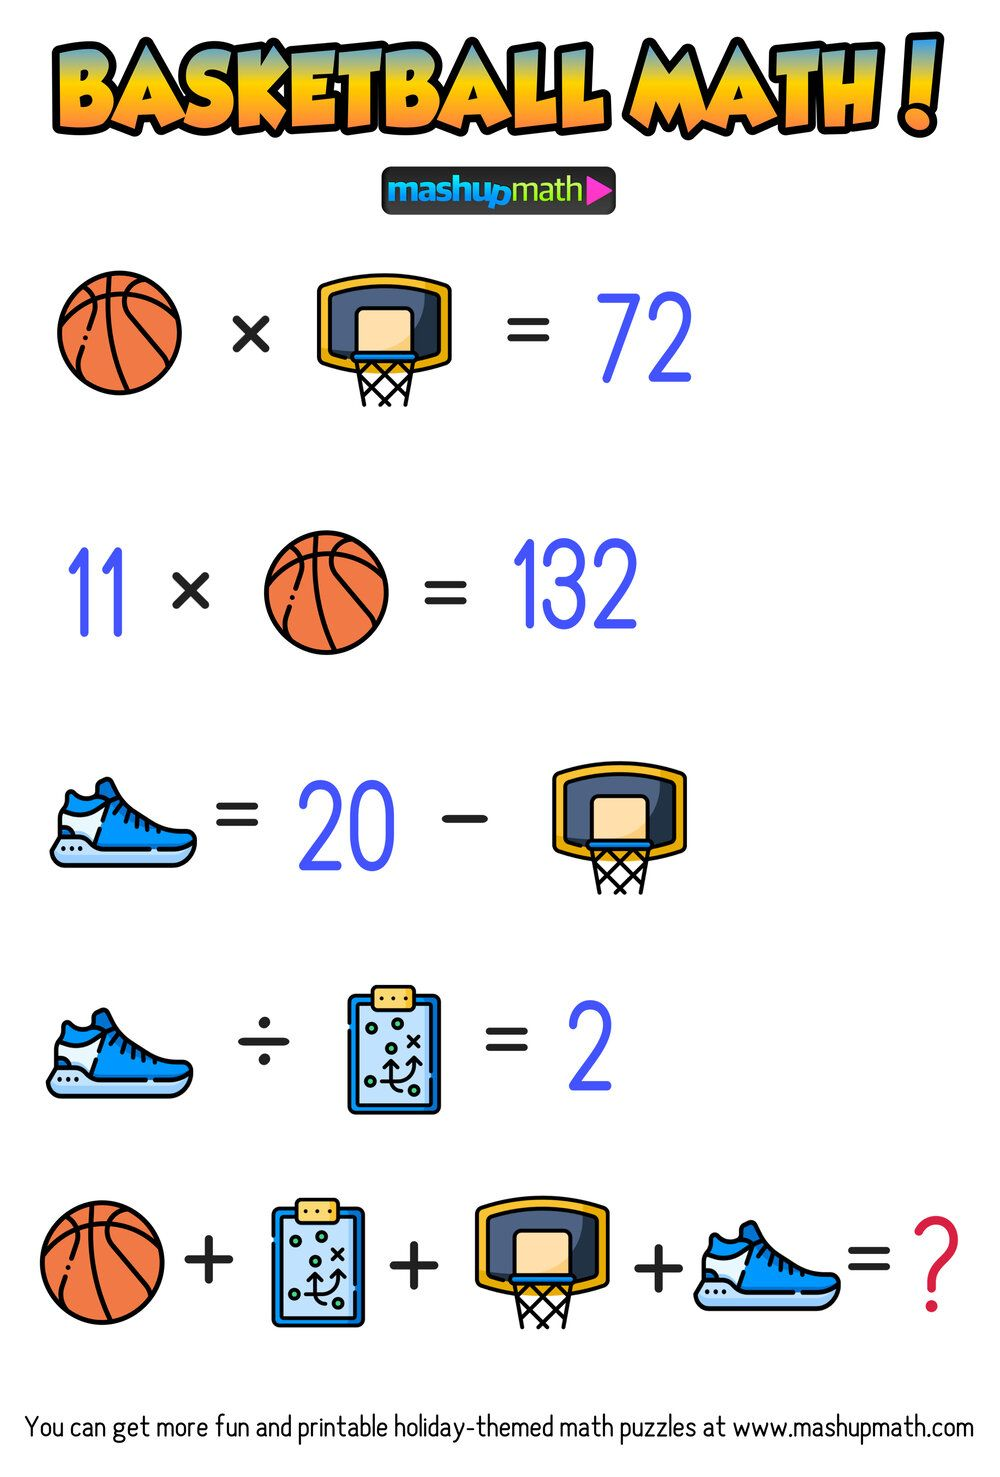 Are Your Kids Ready For These Basketball Math Puzzles Mashup Math Maths Puzzles Basketball Math March Madness Math